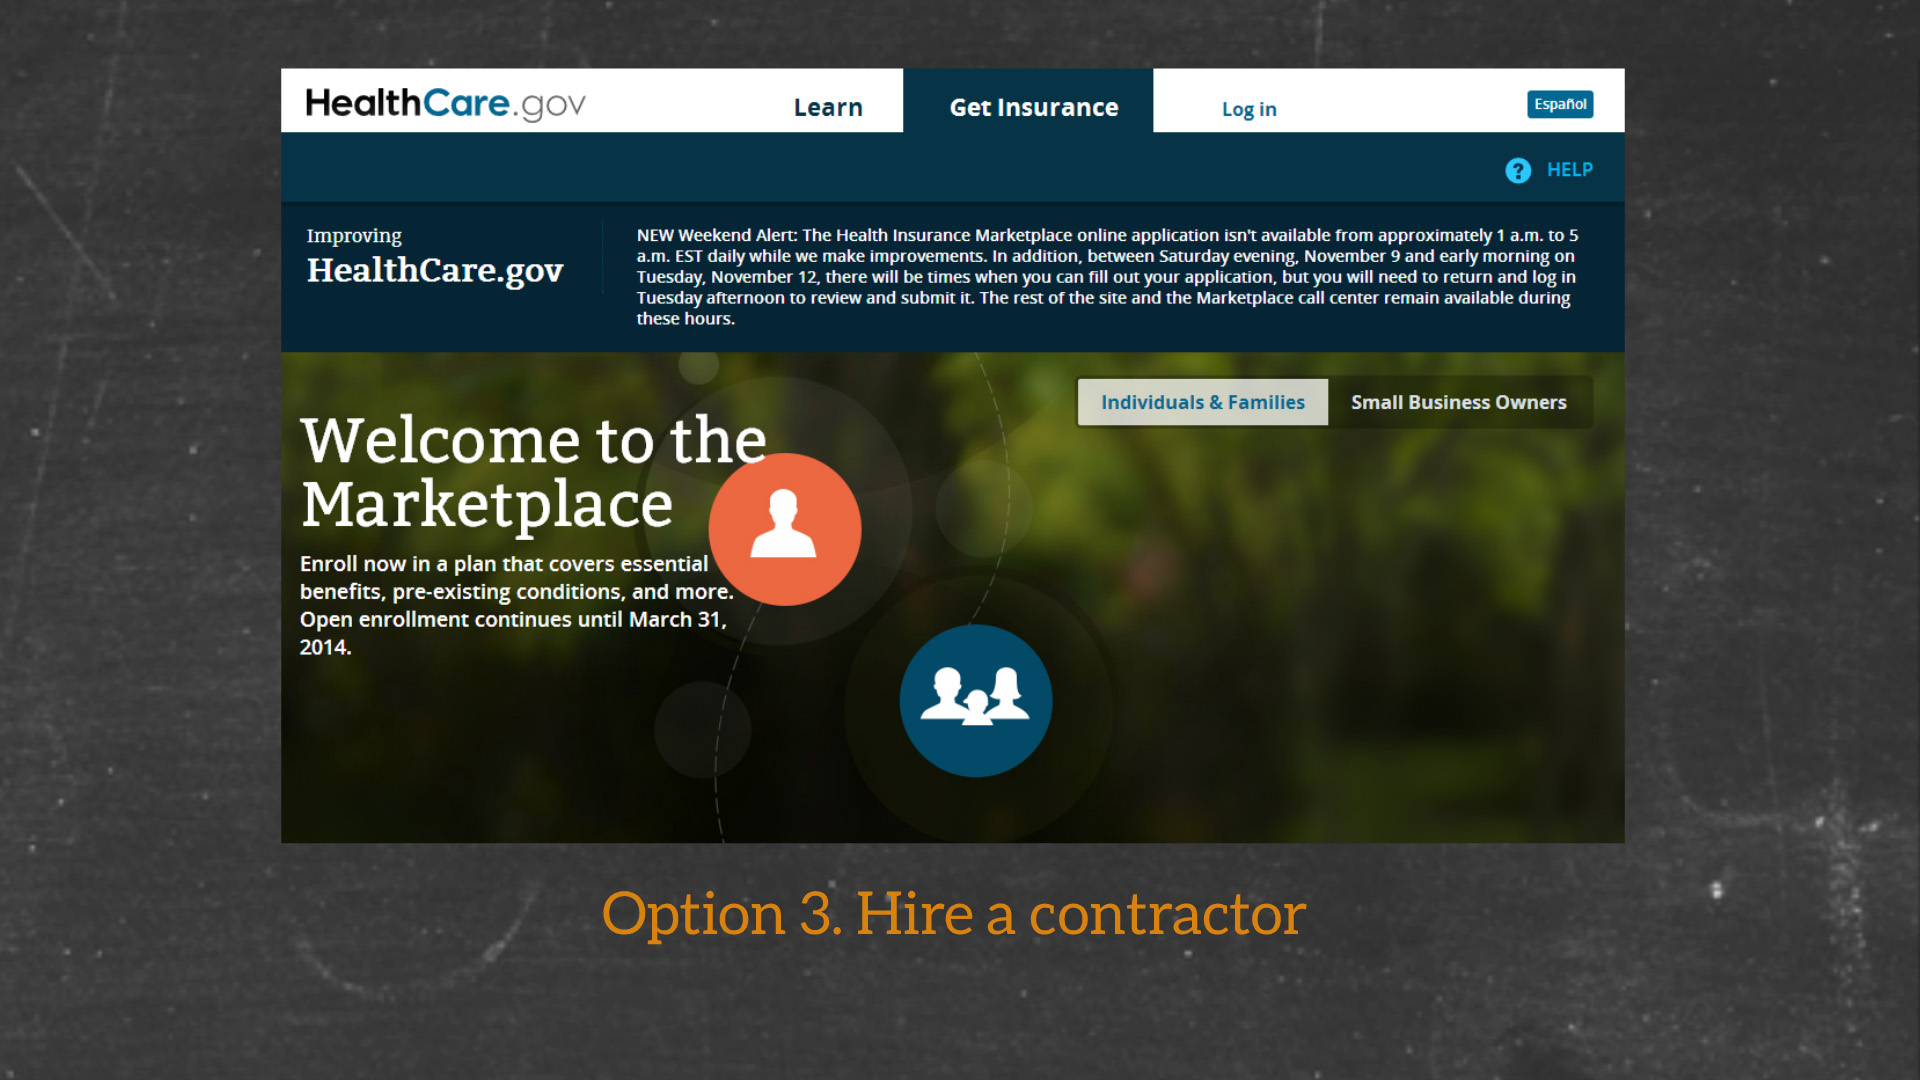 Option 3. Hire a contractor